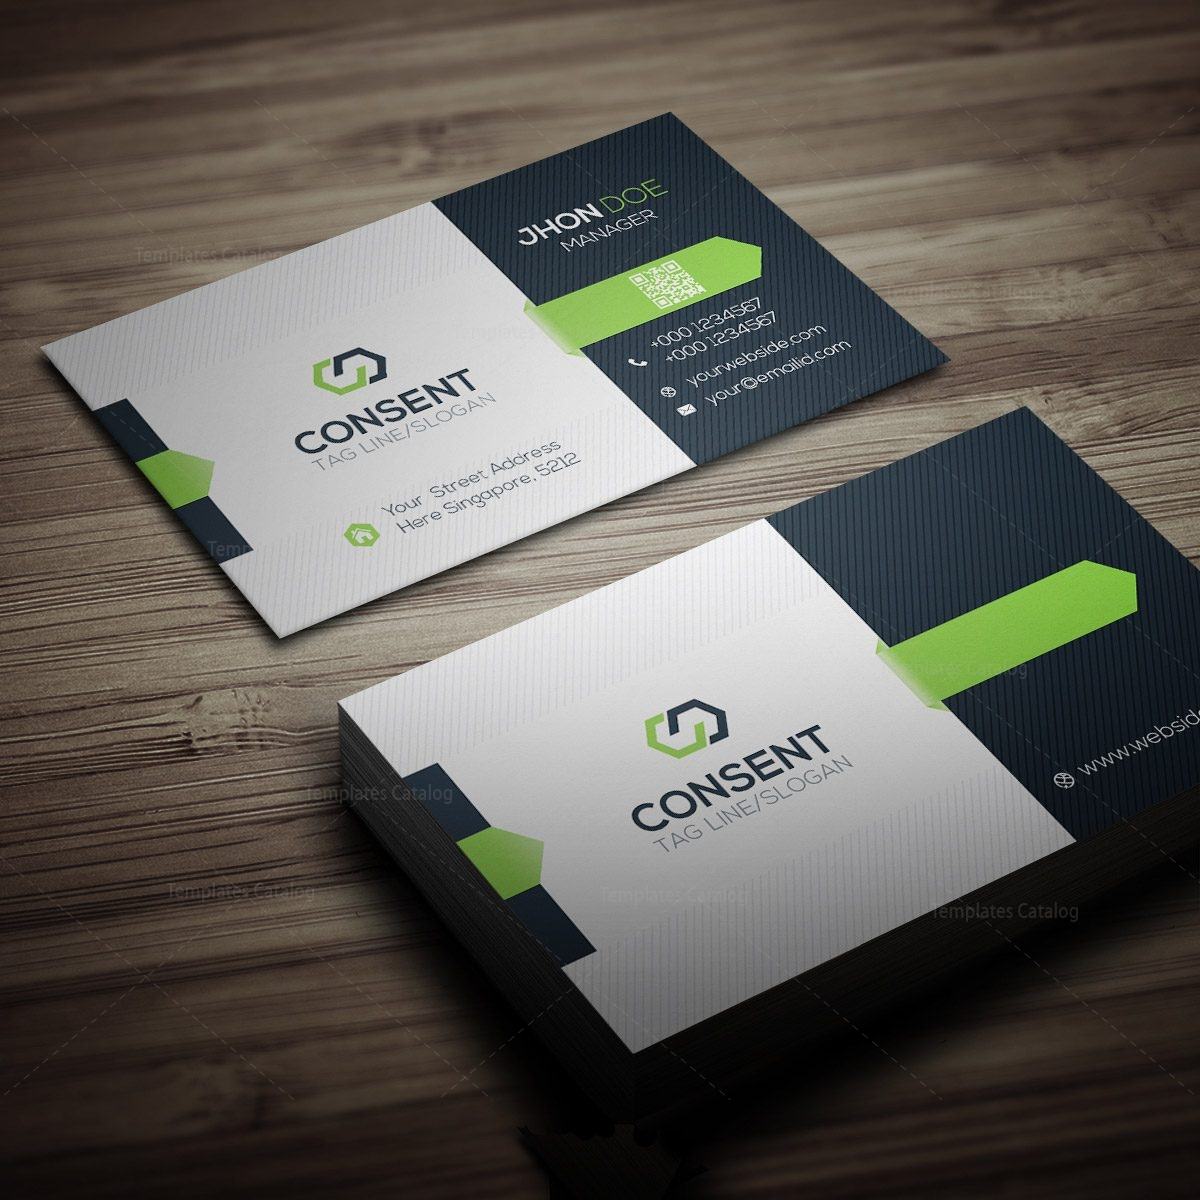 Consent business card template 000275 template catalog for Template of business card